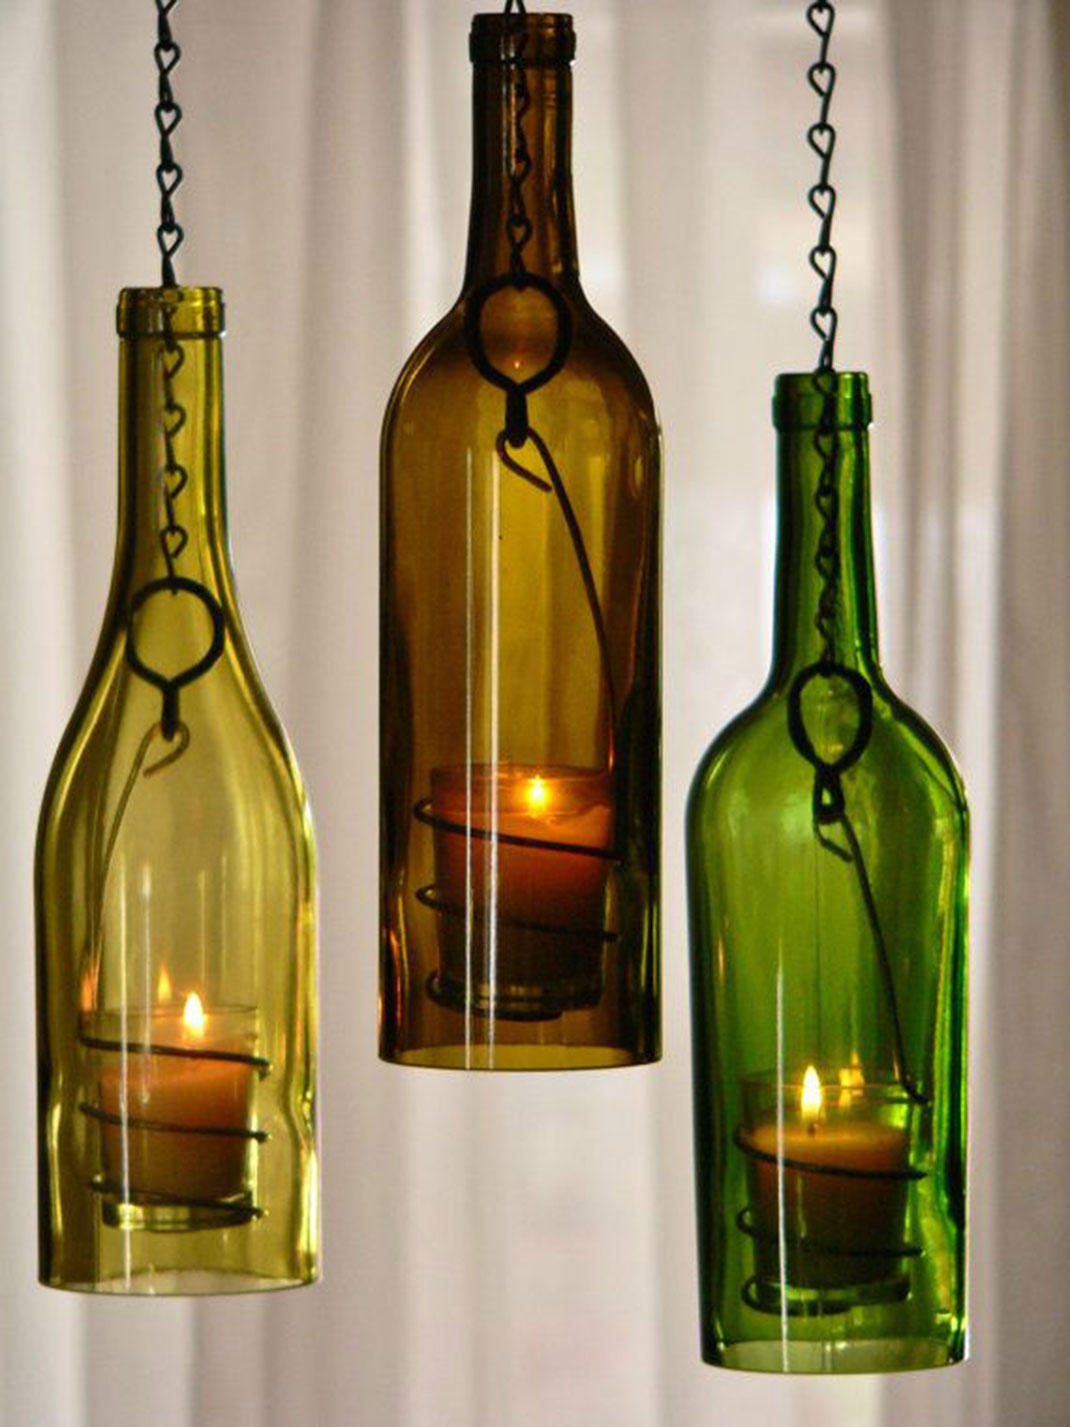 29 Ideas To Help You Recycle Your Glass Bottles Cleverly--26